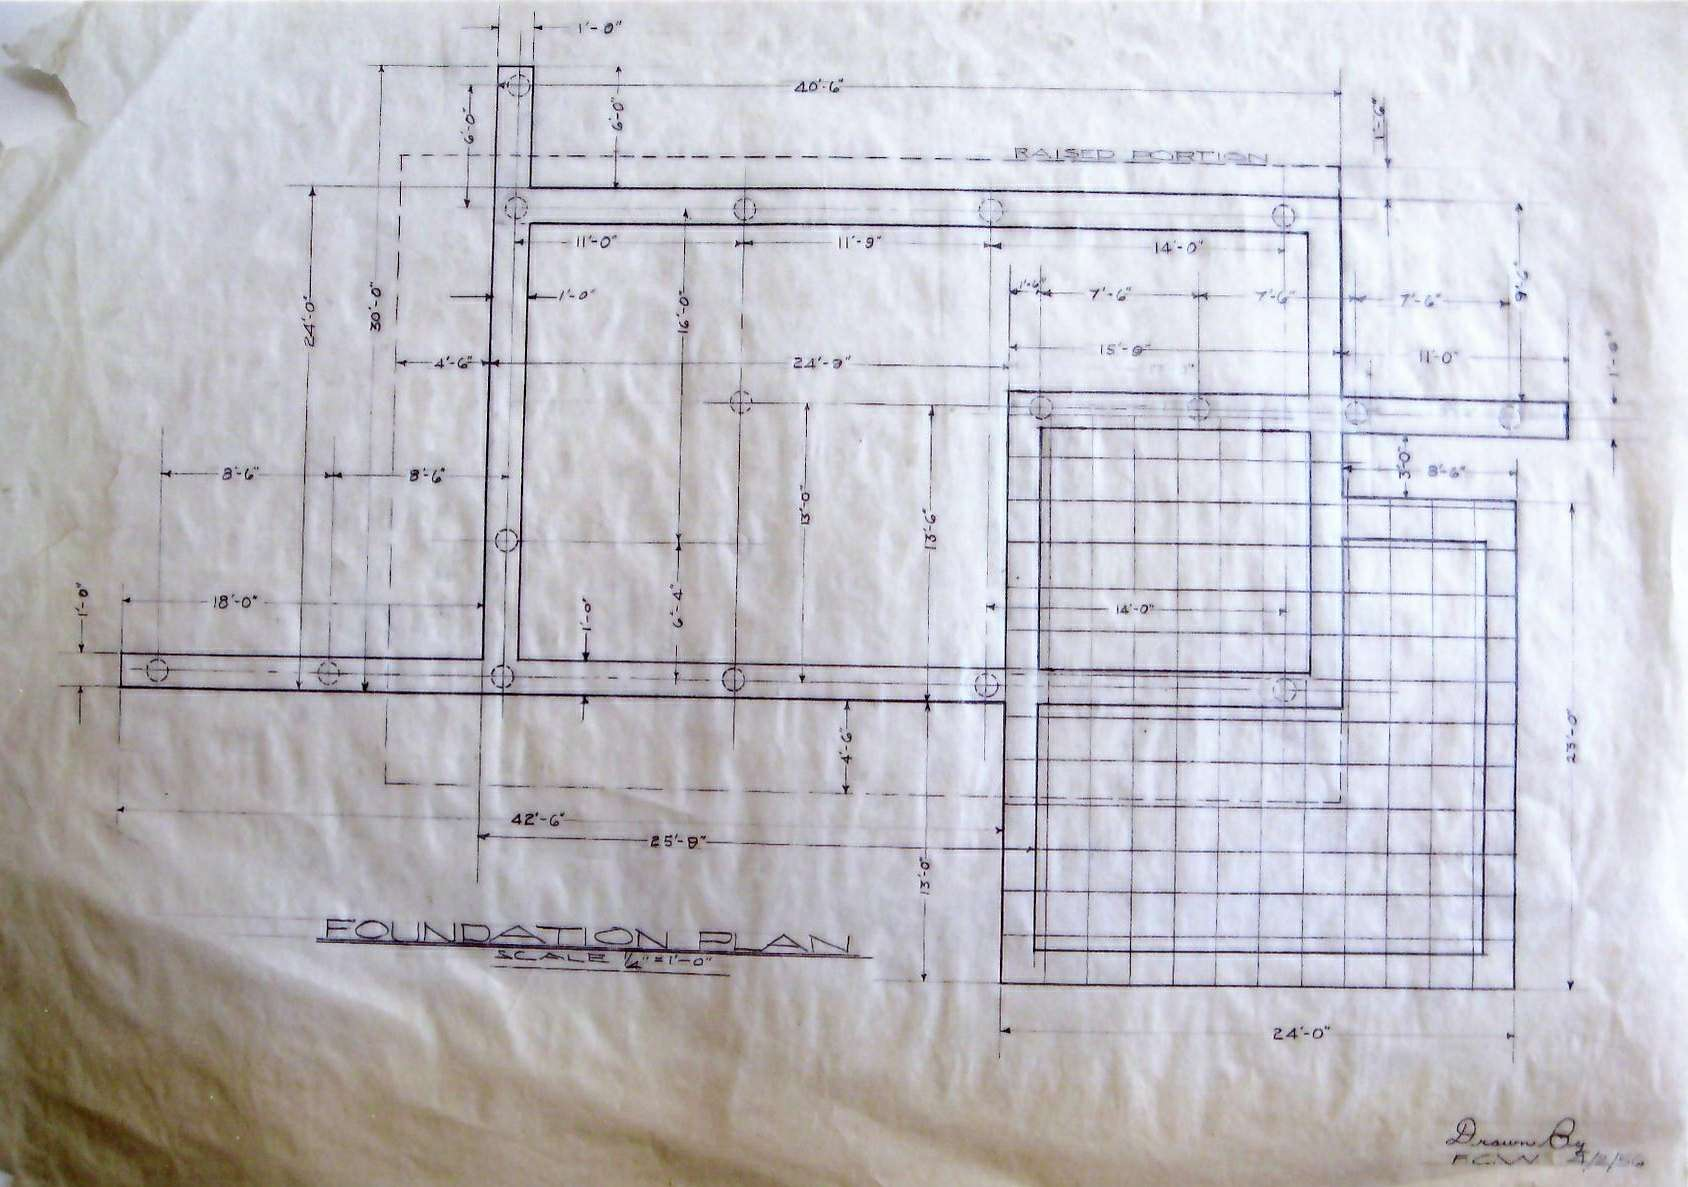 Foundation Plan Floating House Weems Collections